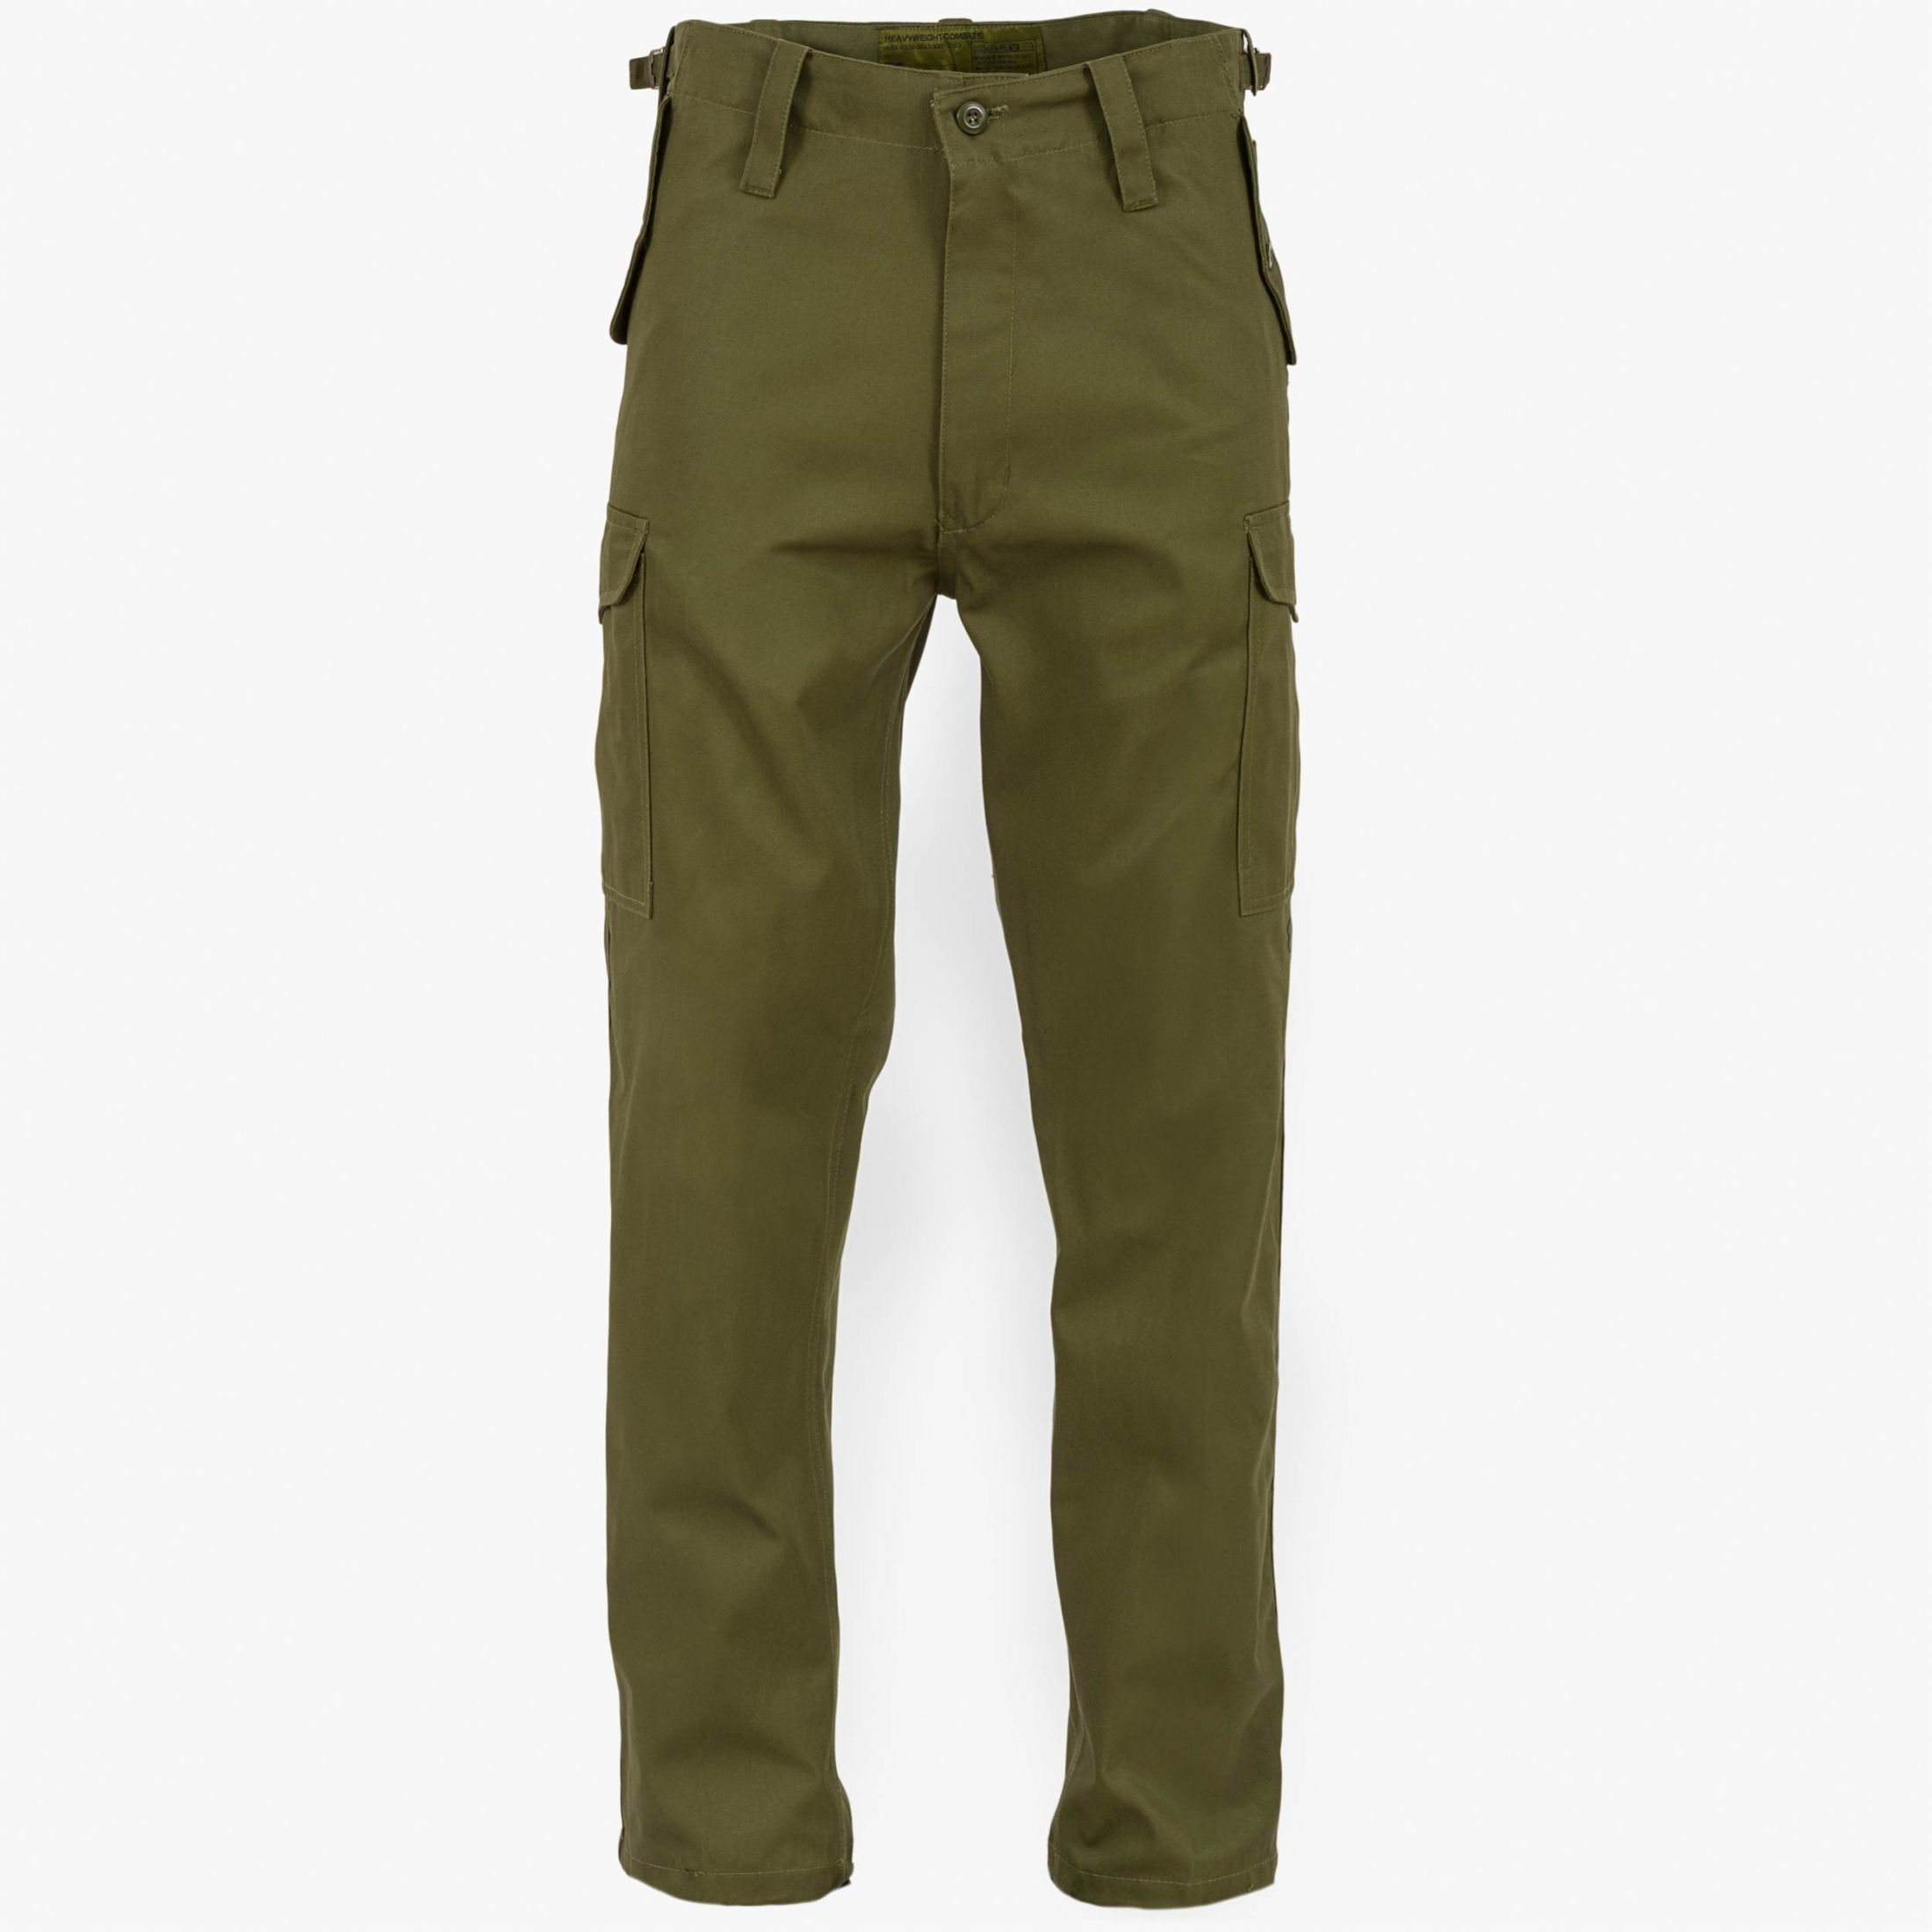 Highlander Heavy Weight Combats Olive Green product image